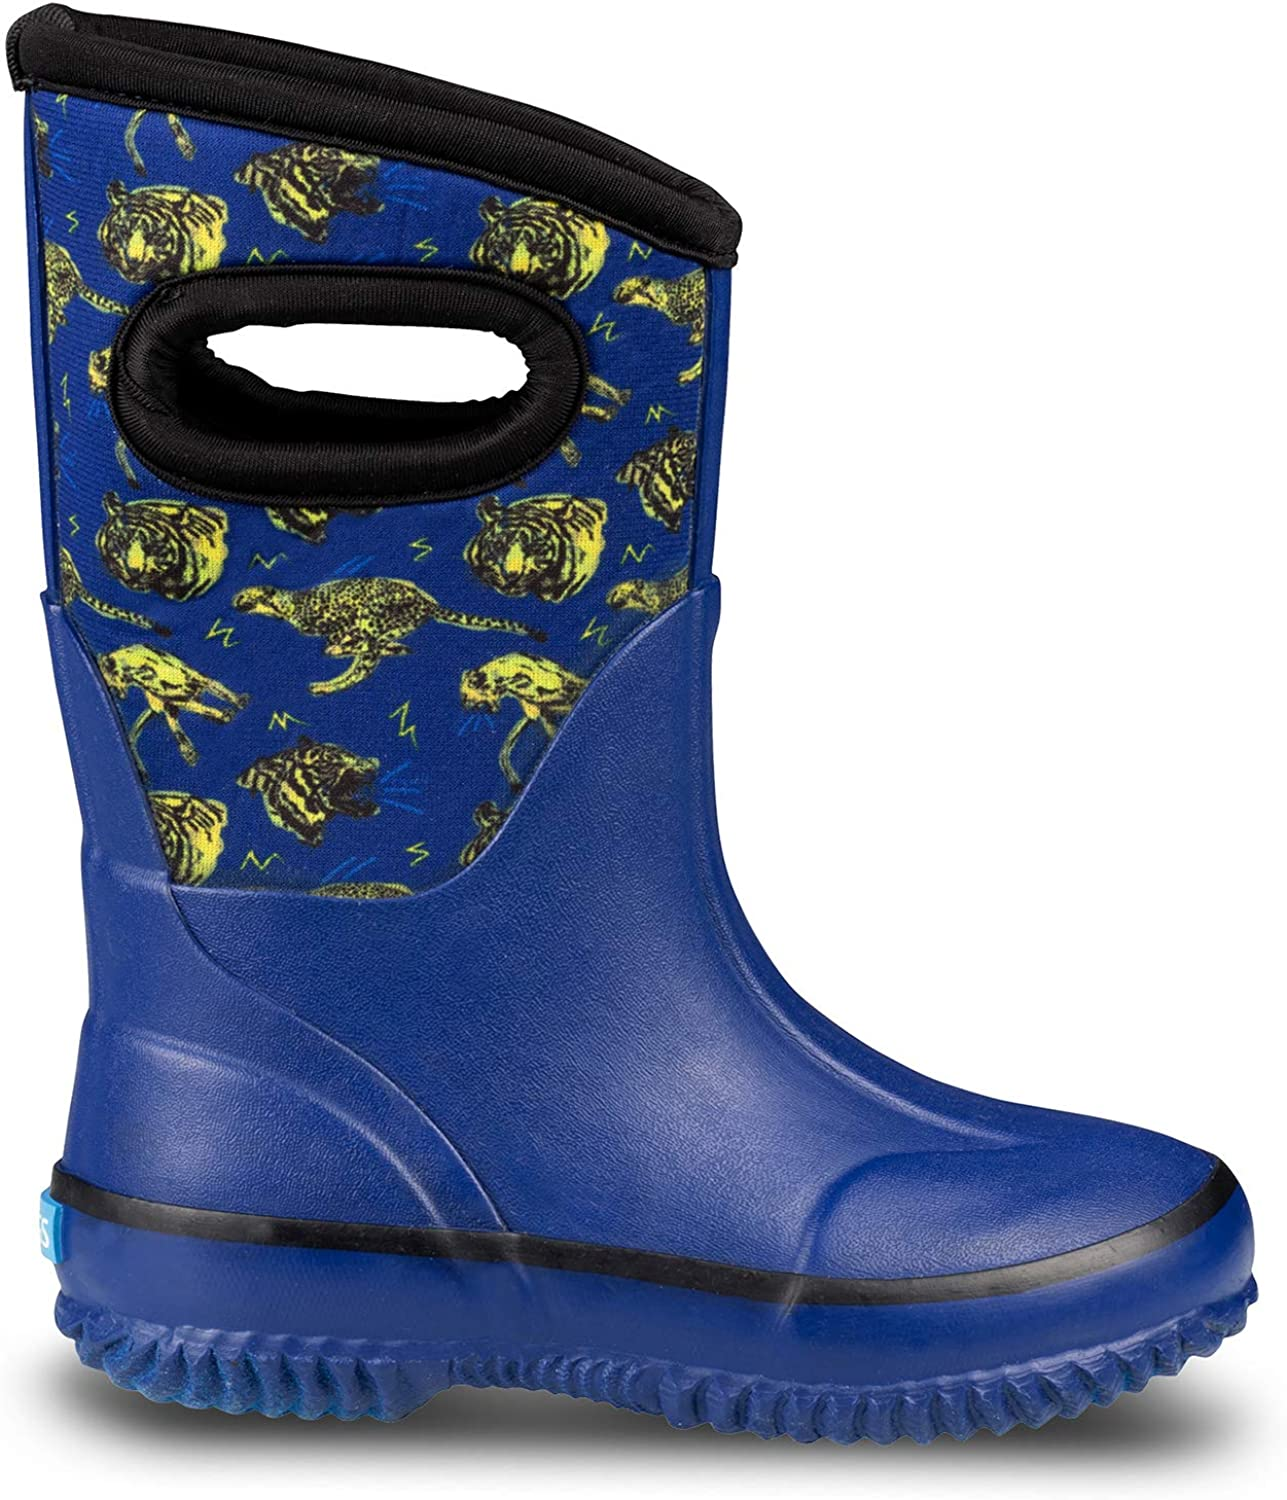 Kids Snow Boots for Girls and Boys ZOOGS All-Weather Toddler Rain Boots